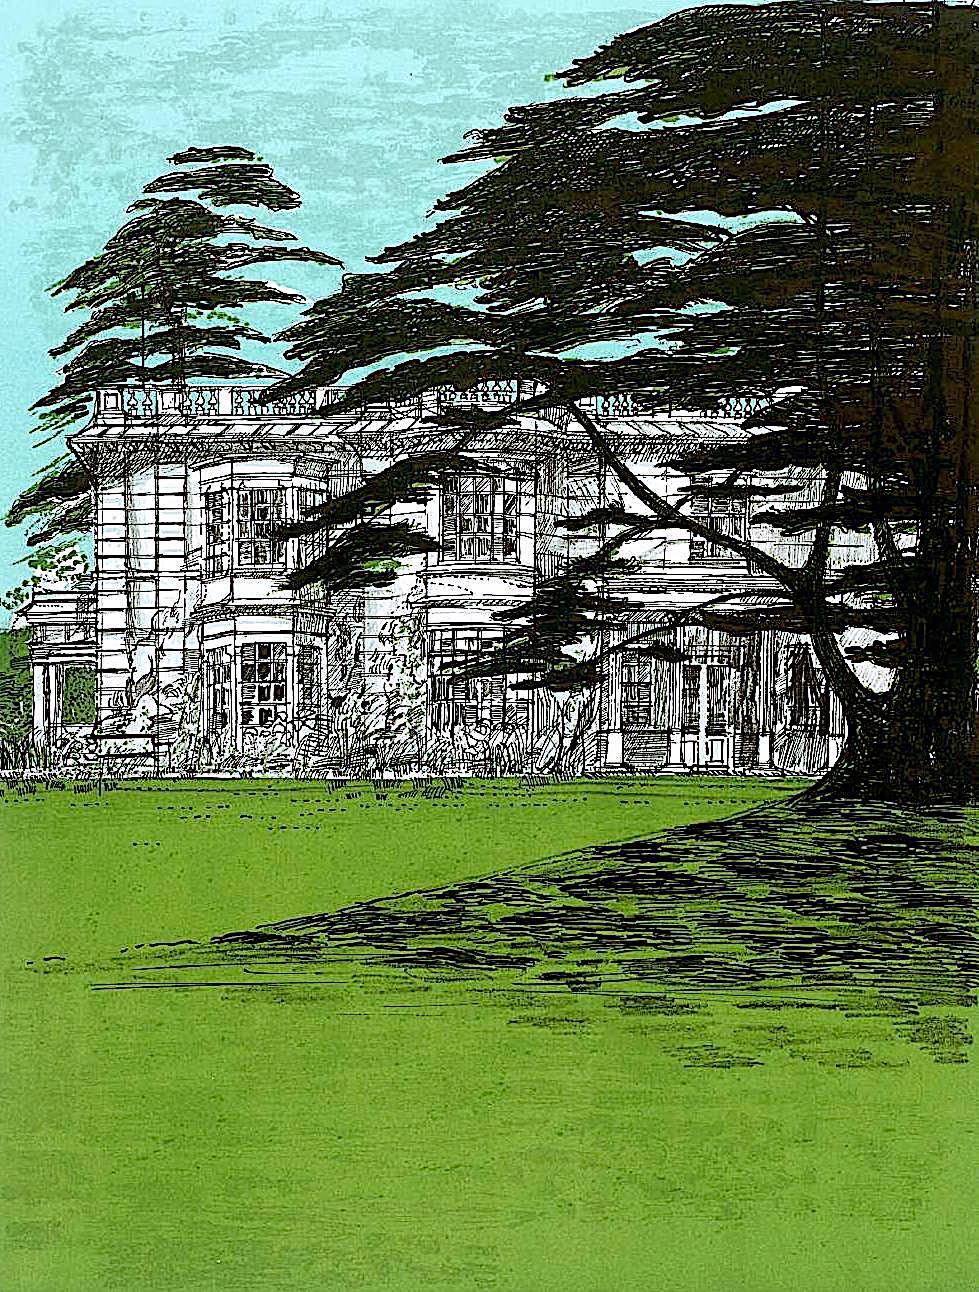 Richard Beer art 1972, an estate home exterior with an old tree